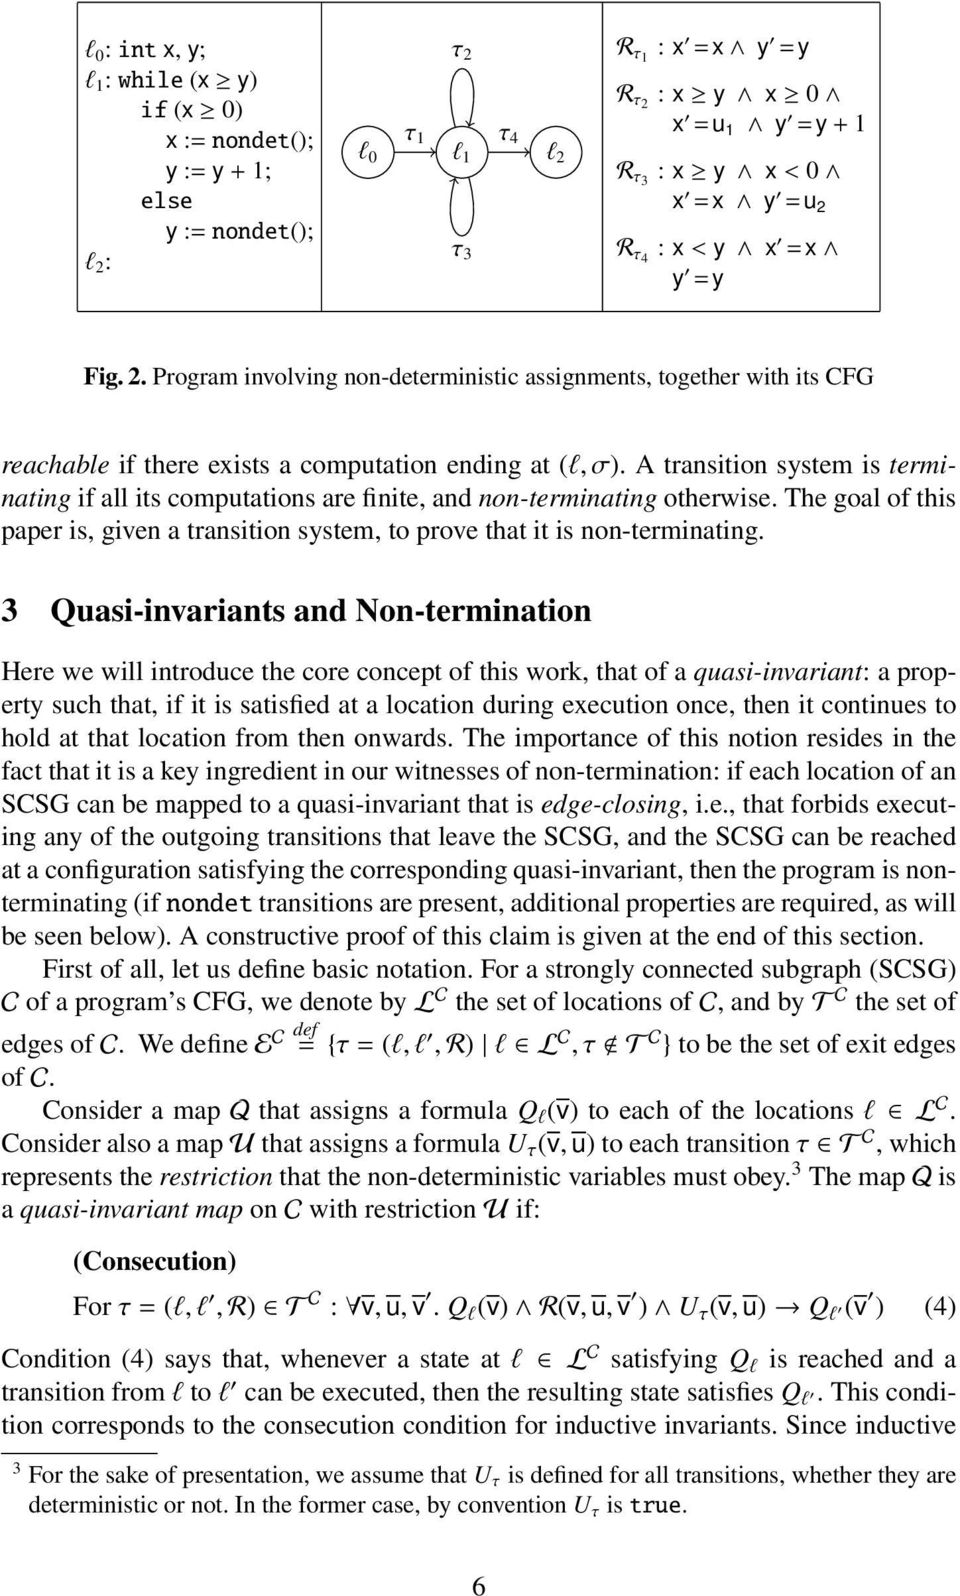 A transition system is terminating if all its computations are finite, and non-terminating otherwise. The goal of this paper is, given a transition system, to prove that it is non-terminating.